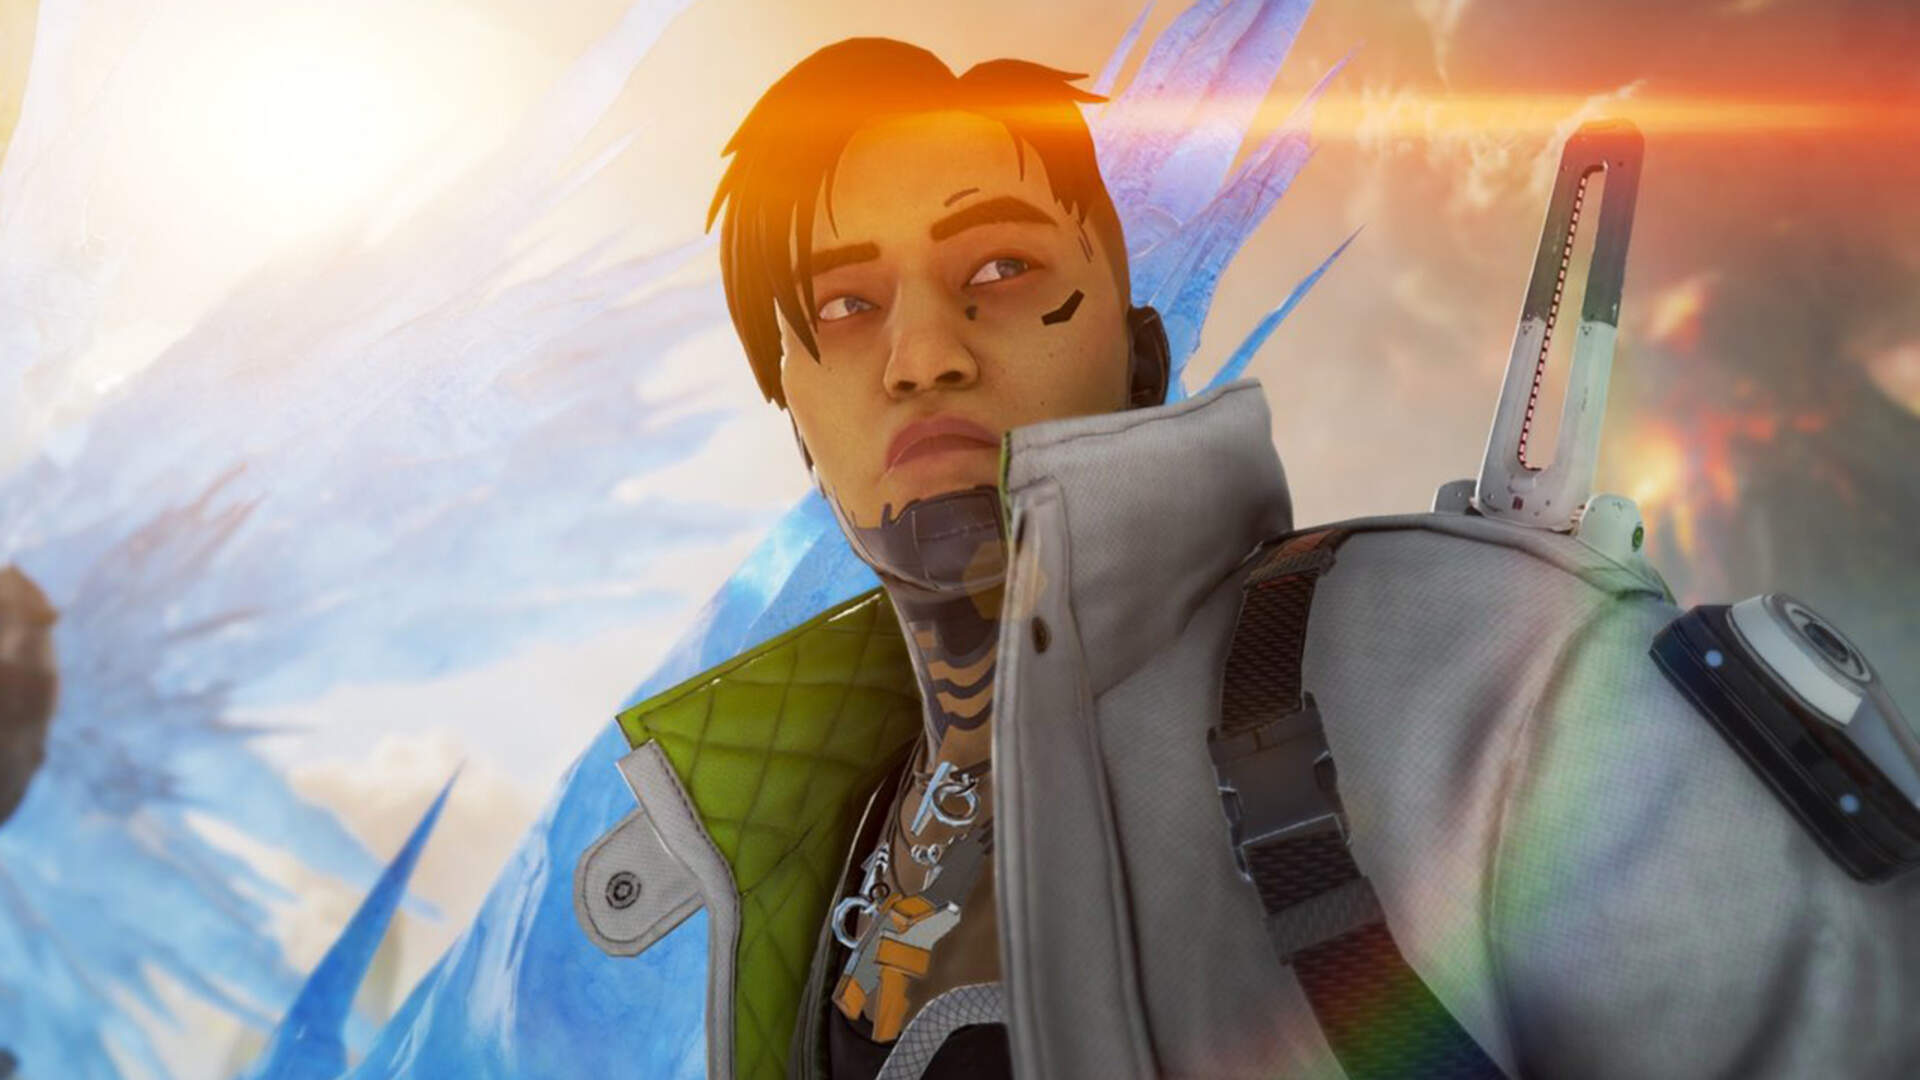 A Bug Has Made the Ring the Most Dangerous Enemy in Apex Legends